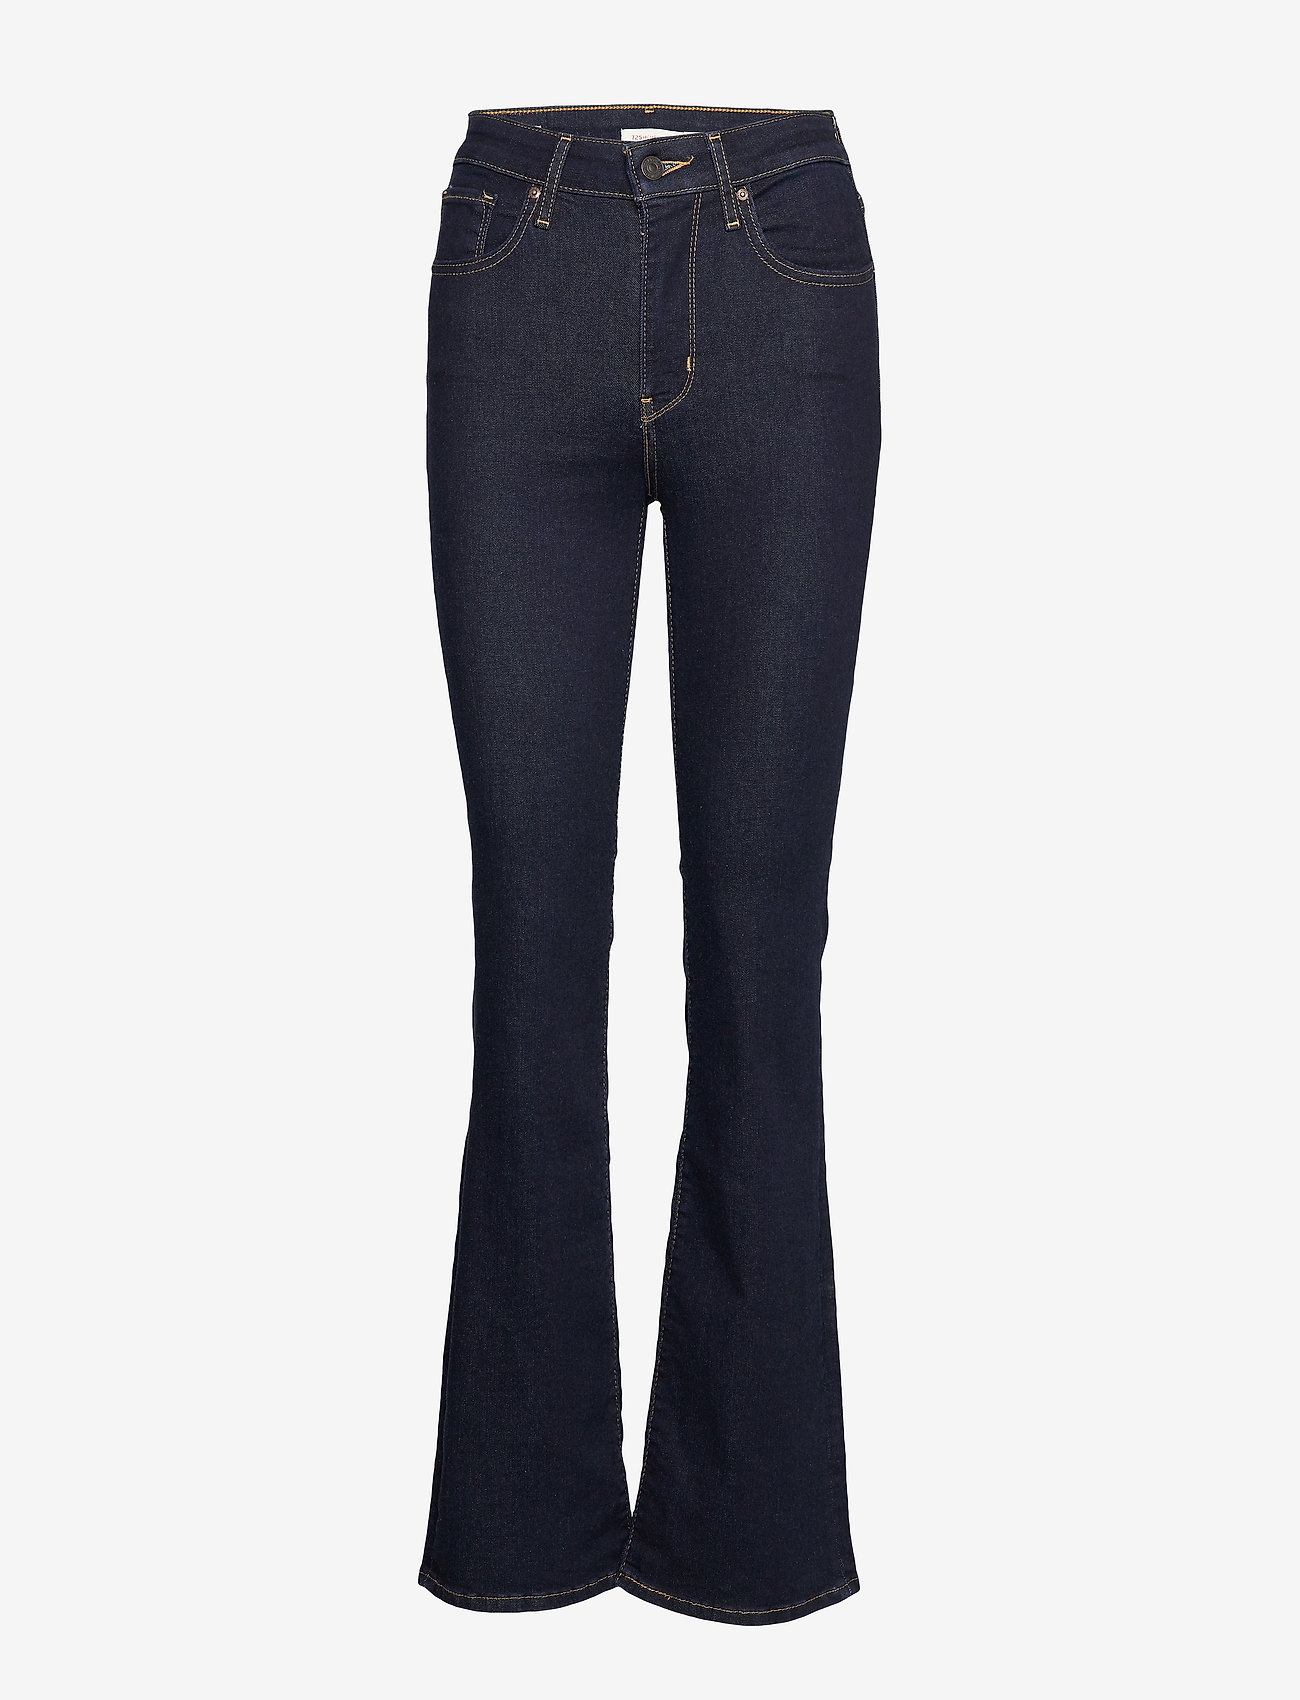 LEVI´S Women - 725 HIGH RISE BOOTCUT TO THE N - flared jeans - dark indigo - flat finish - 0